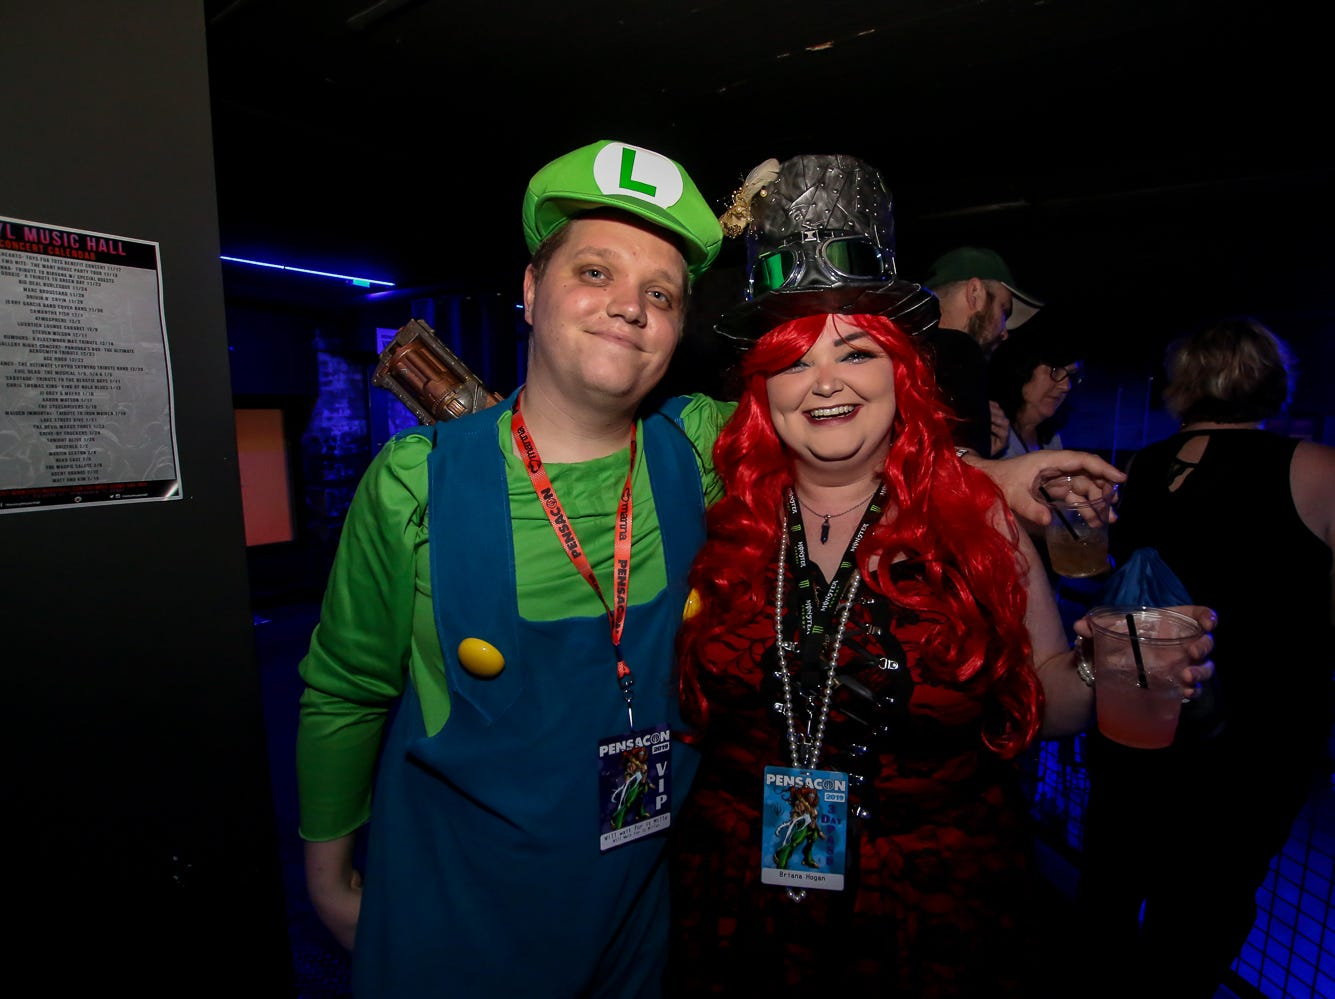 At Vinyl Music Hall for the Pensacon after party, featuring a performance by Cybertronic Spree, on Saturday, February 23, 2019.